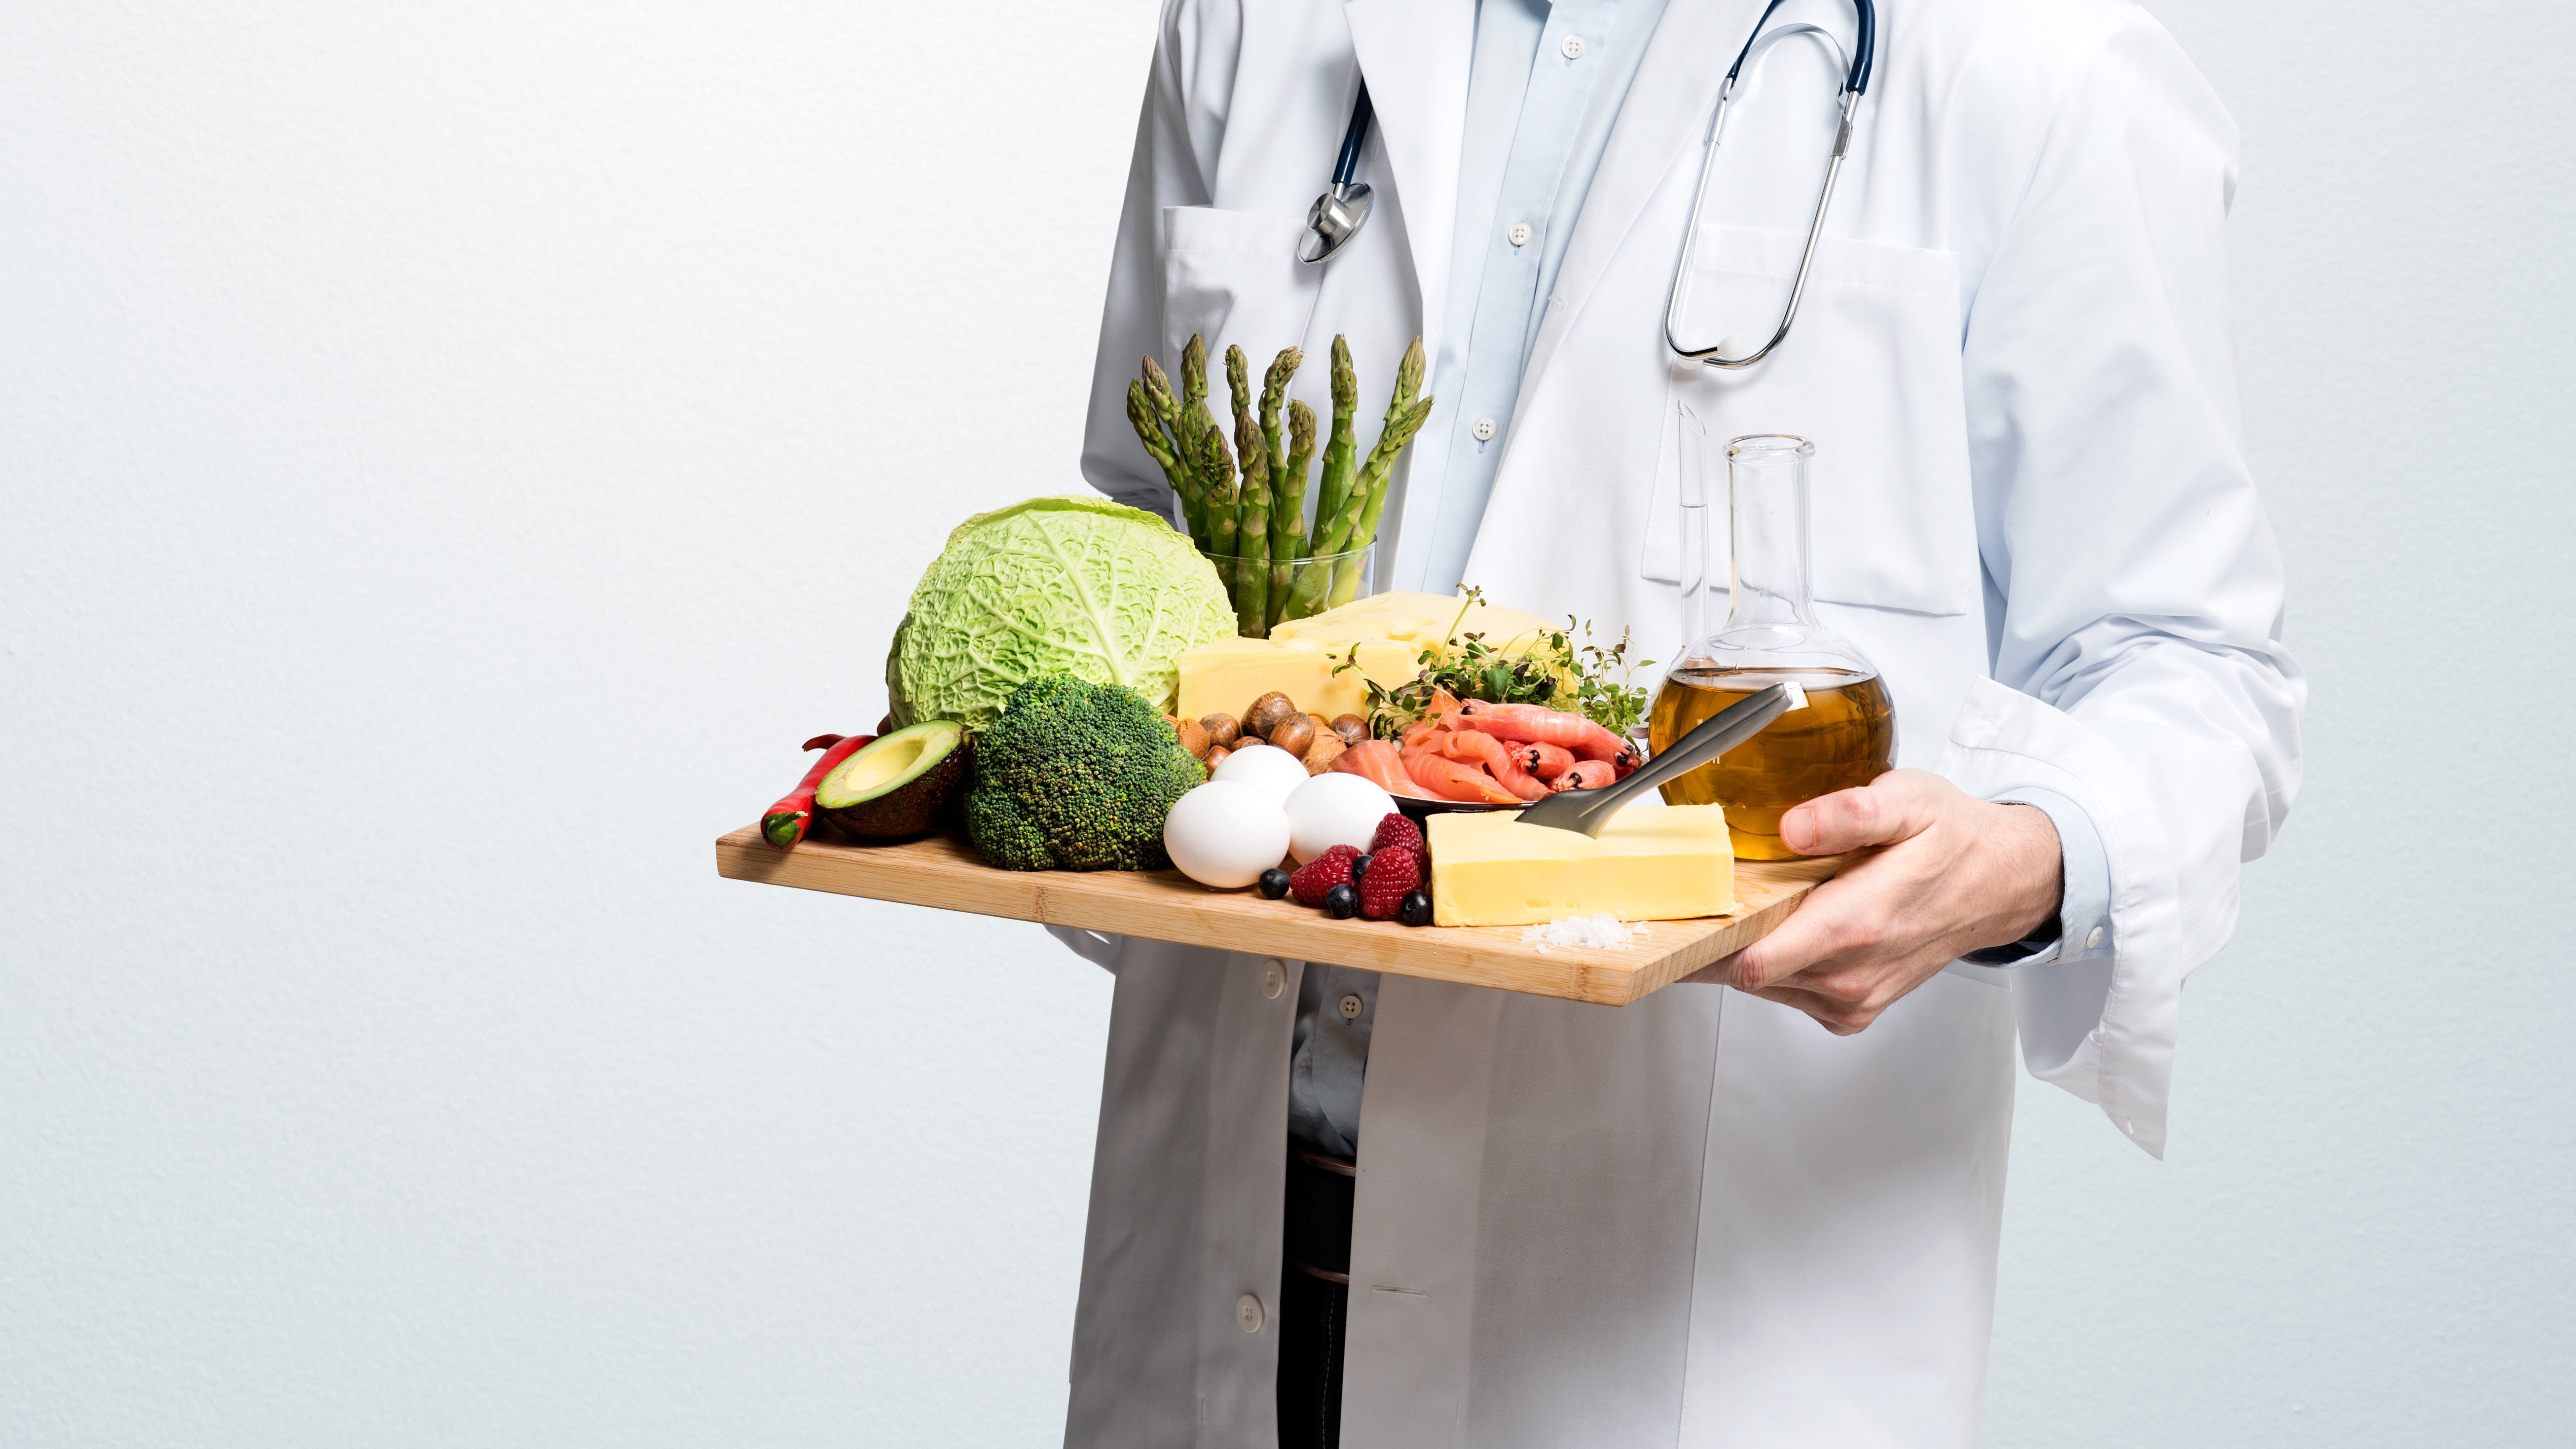 The Diet Doctor food policy